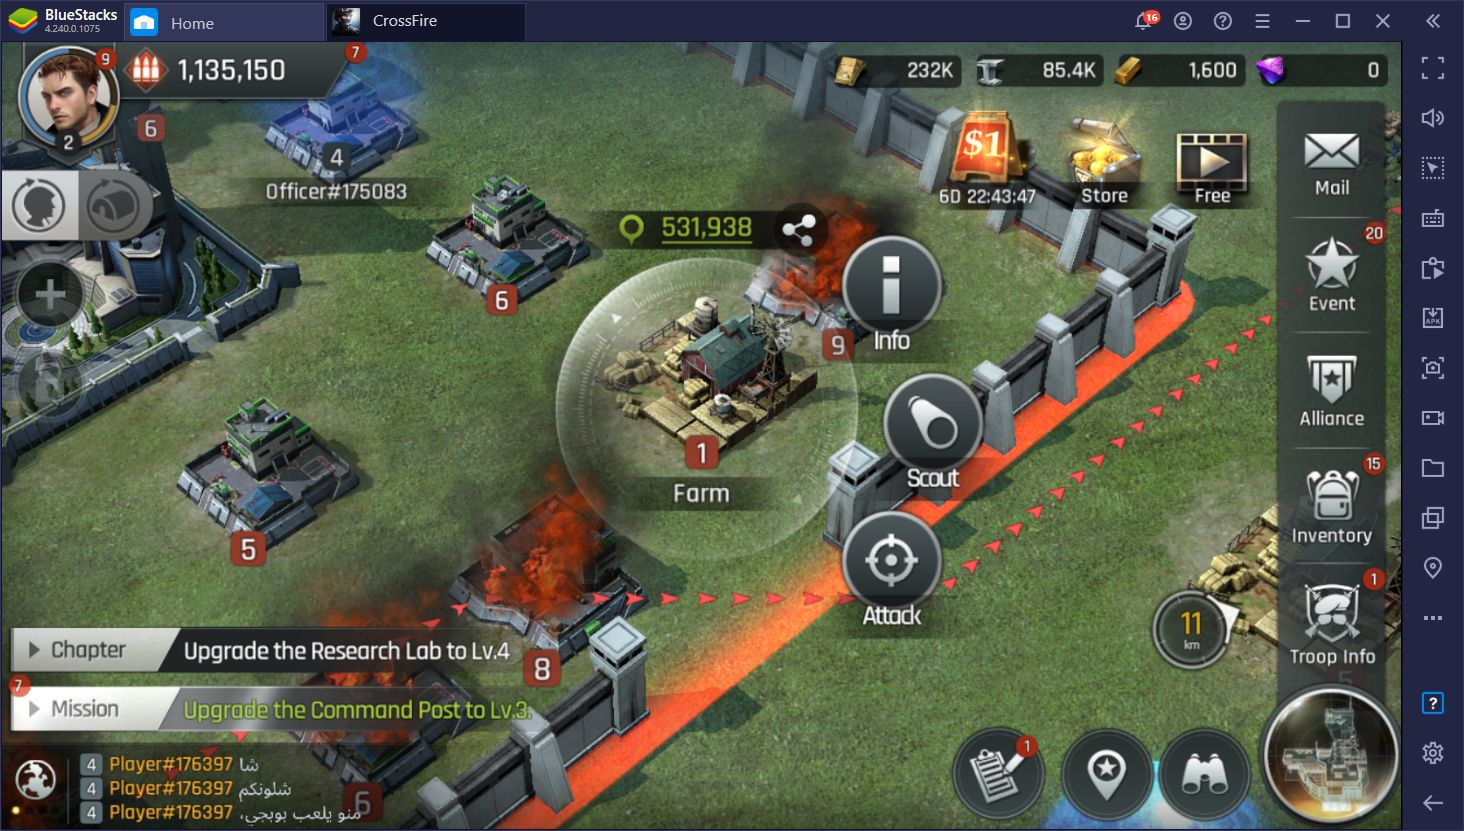 Crossfire: Warzone – Installing and Playing This Mobile Strategy Game on PC With BlueStacks